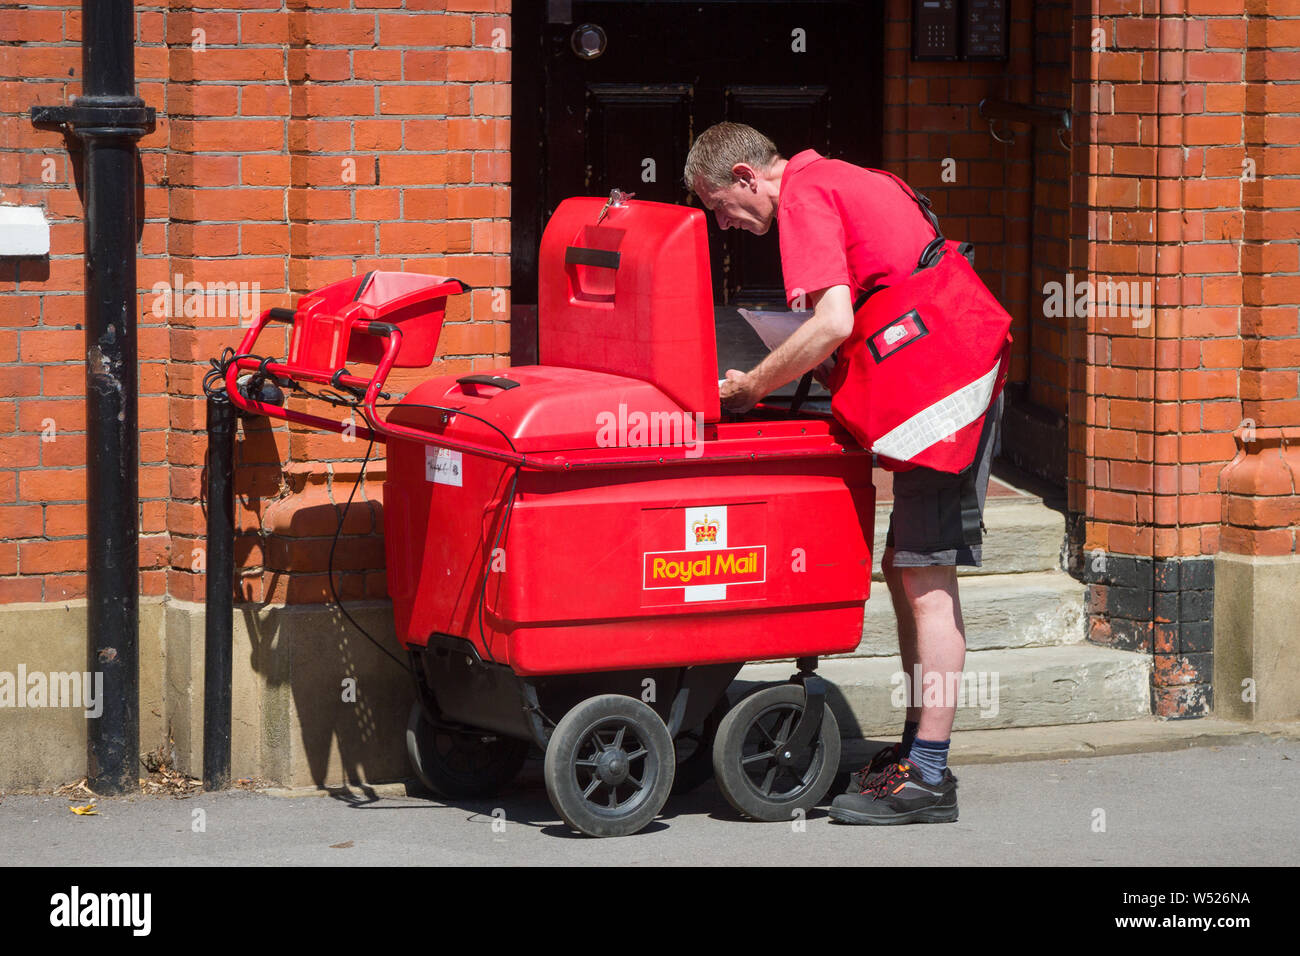 a-postman-collects-mail-for-delivery-from-an-electric-postal-round-royal-mail-delivery-trolley-or-hand-cart-W526NA.jpg?profile=RESIZE_400x